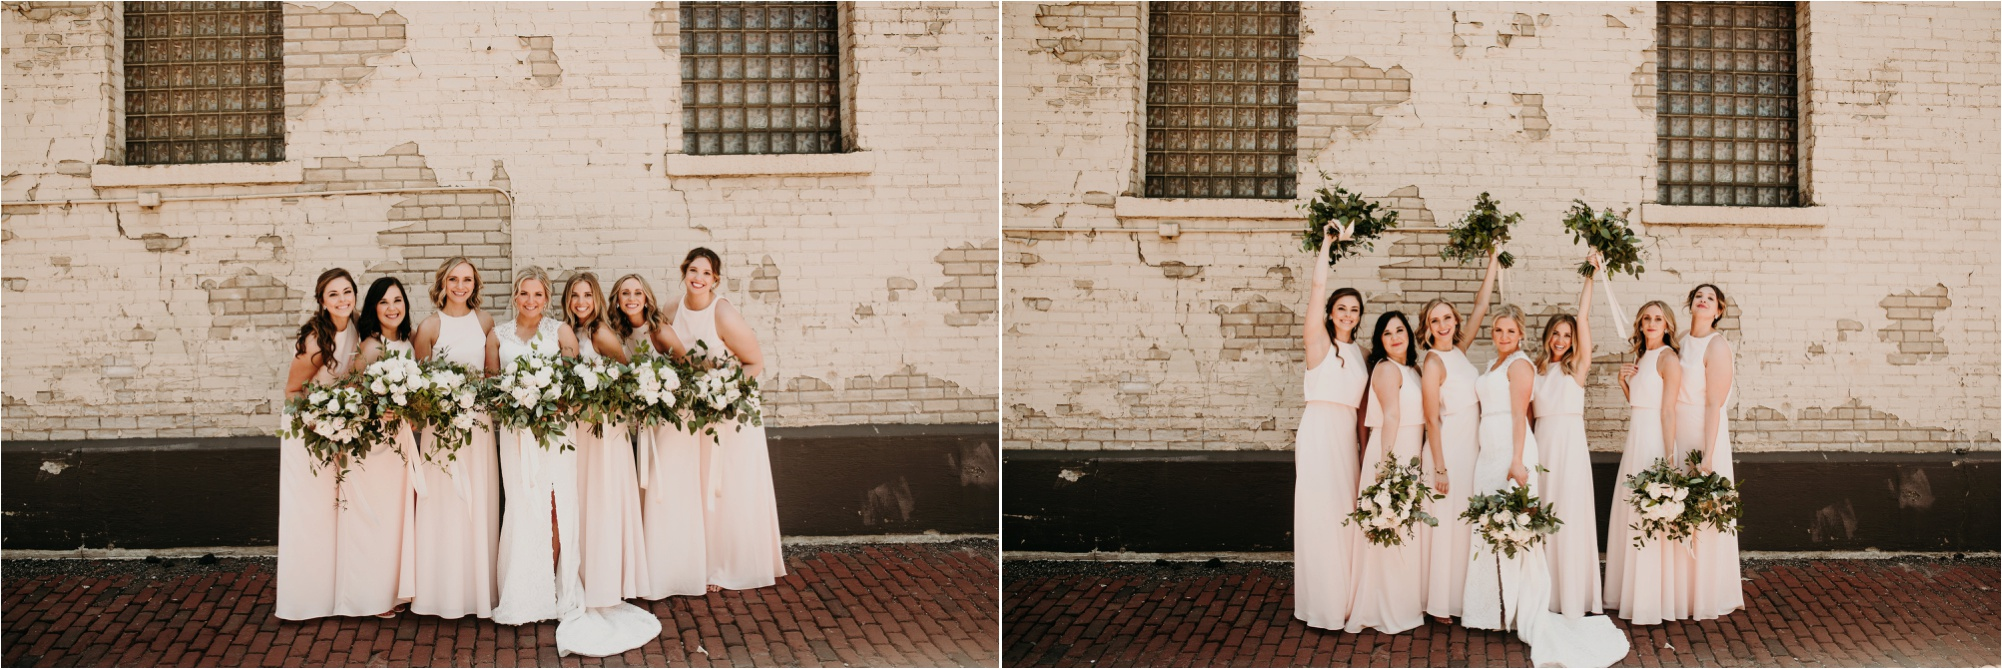 north loop minneapolis hewing bridal party wedding photos